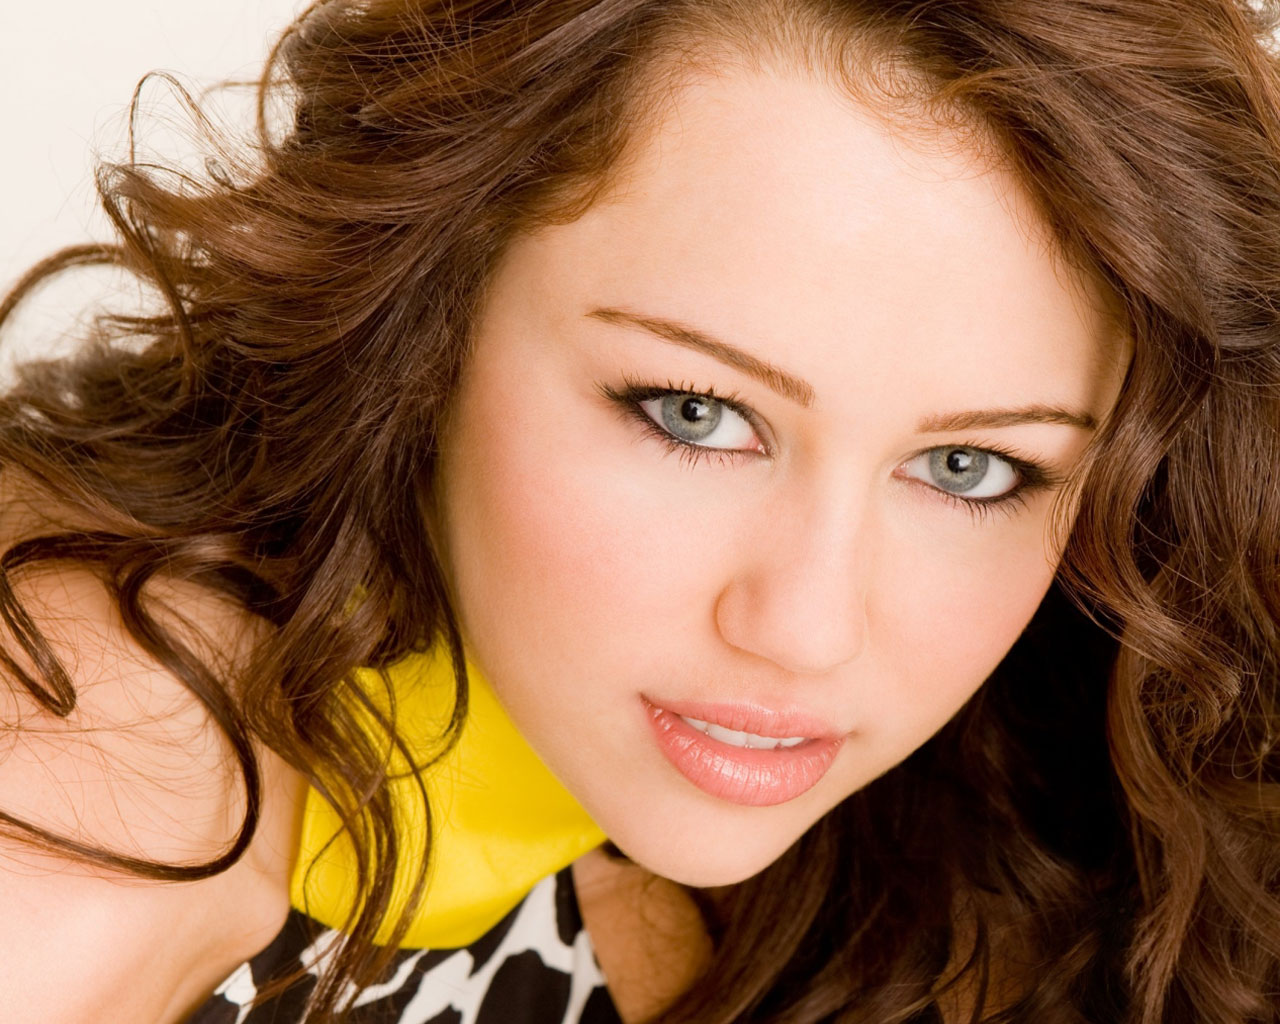 American Actress Miley Cyrus 400.46 Kb